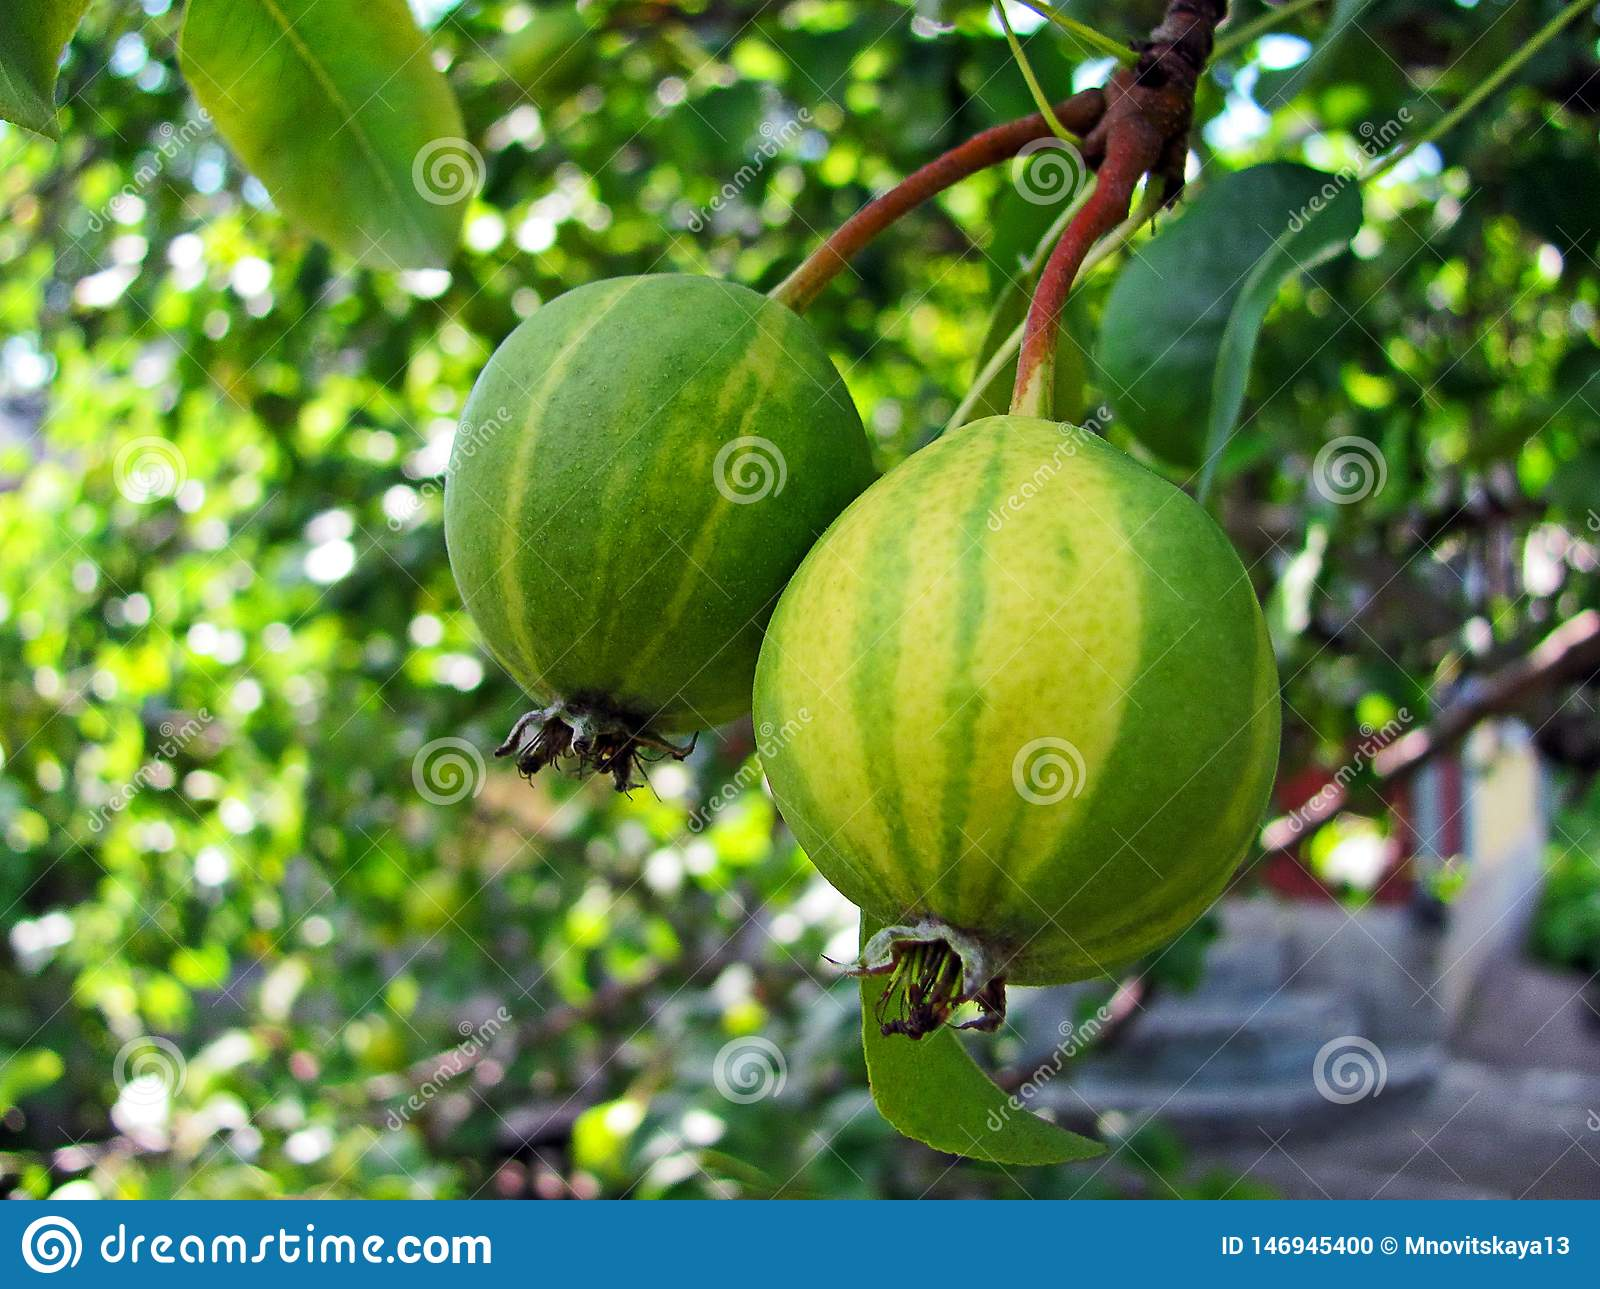 Ripe striped pears on a branch.